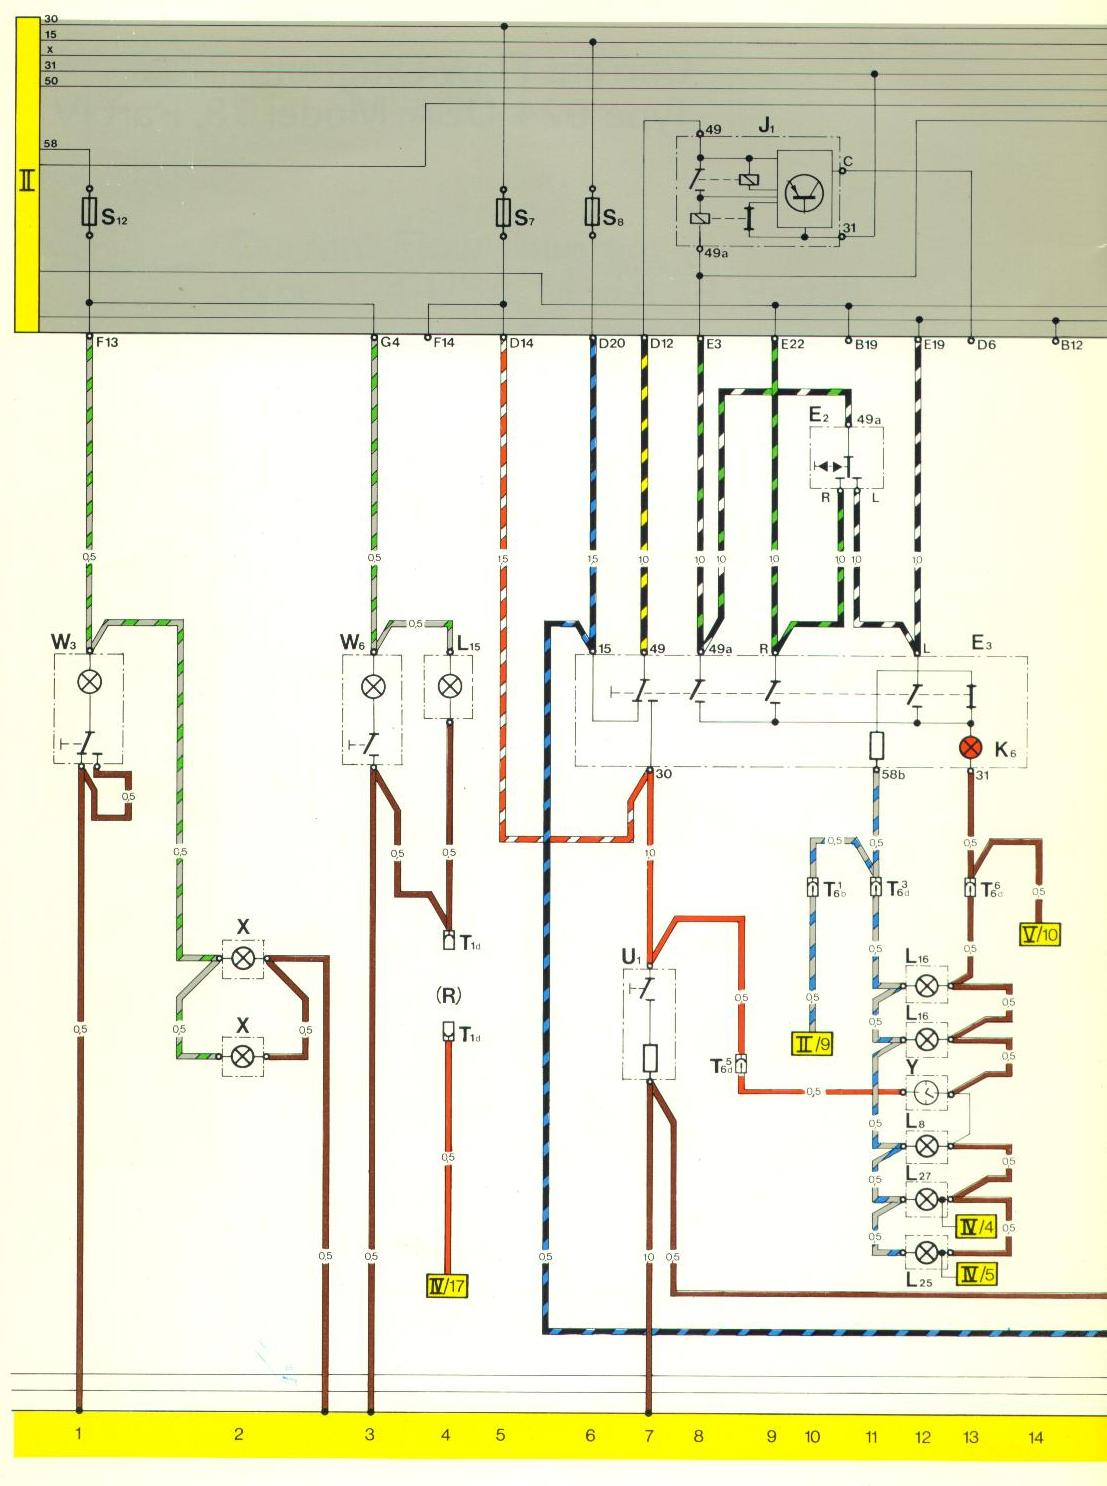 Lovely Porsche 944 Wiring Diagram Pdf Photos - Electrical and ...